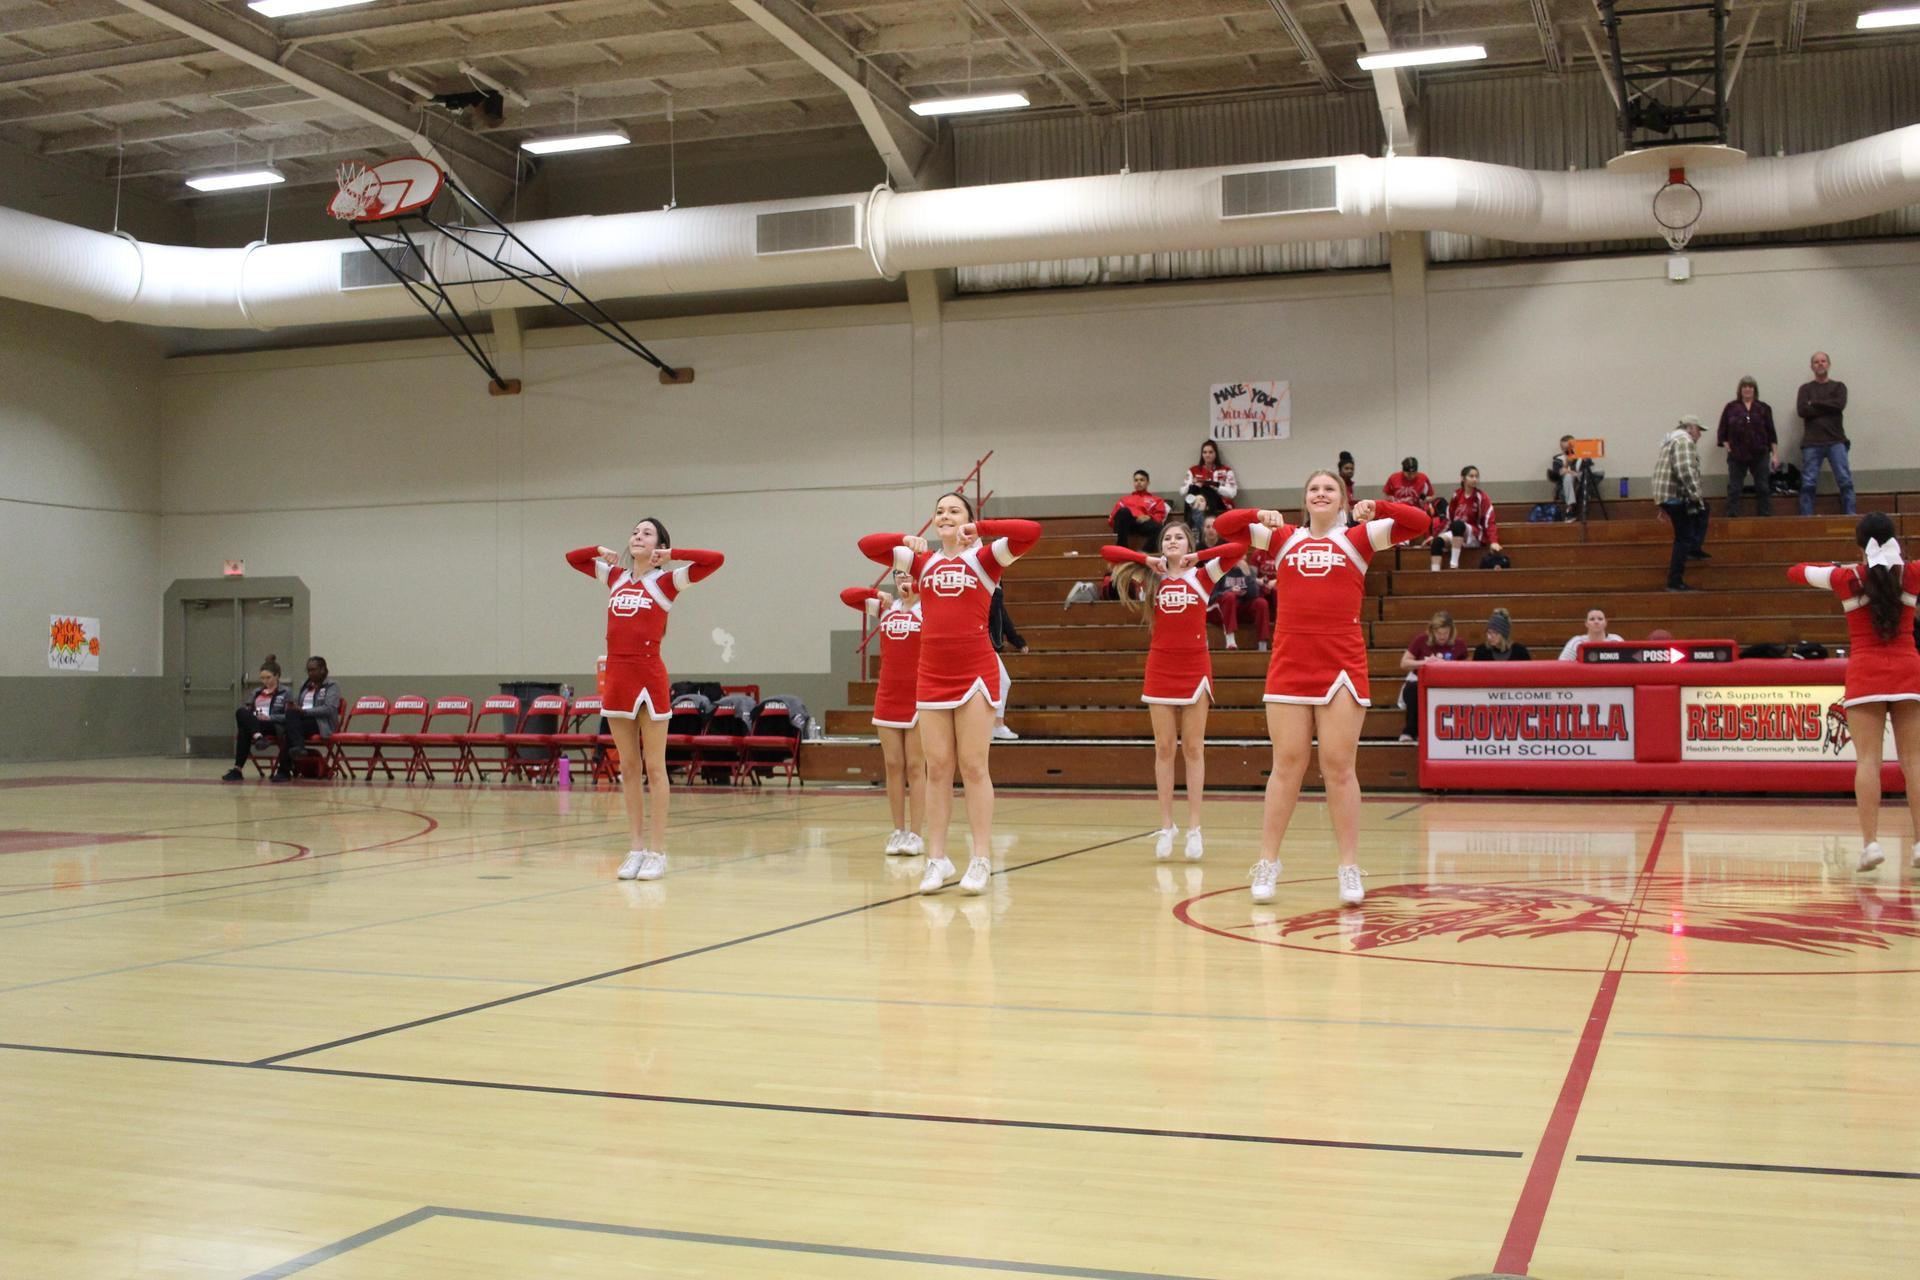 Cheer at Sierra basketball game